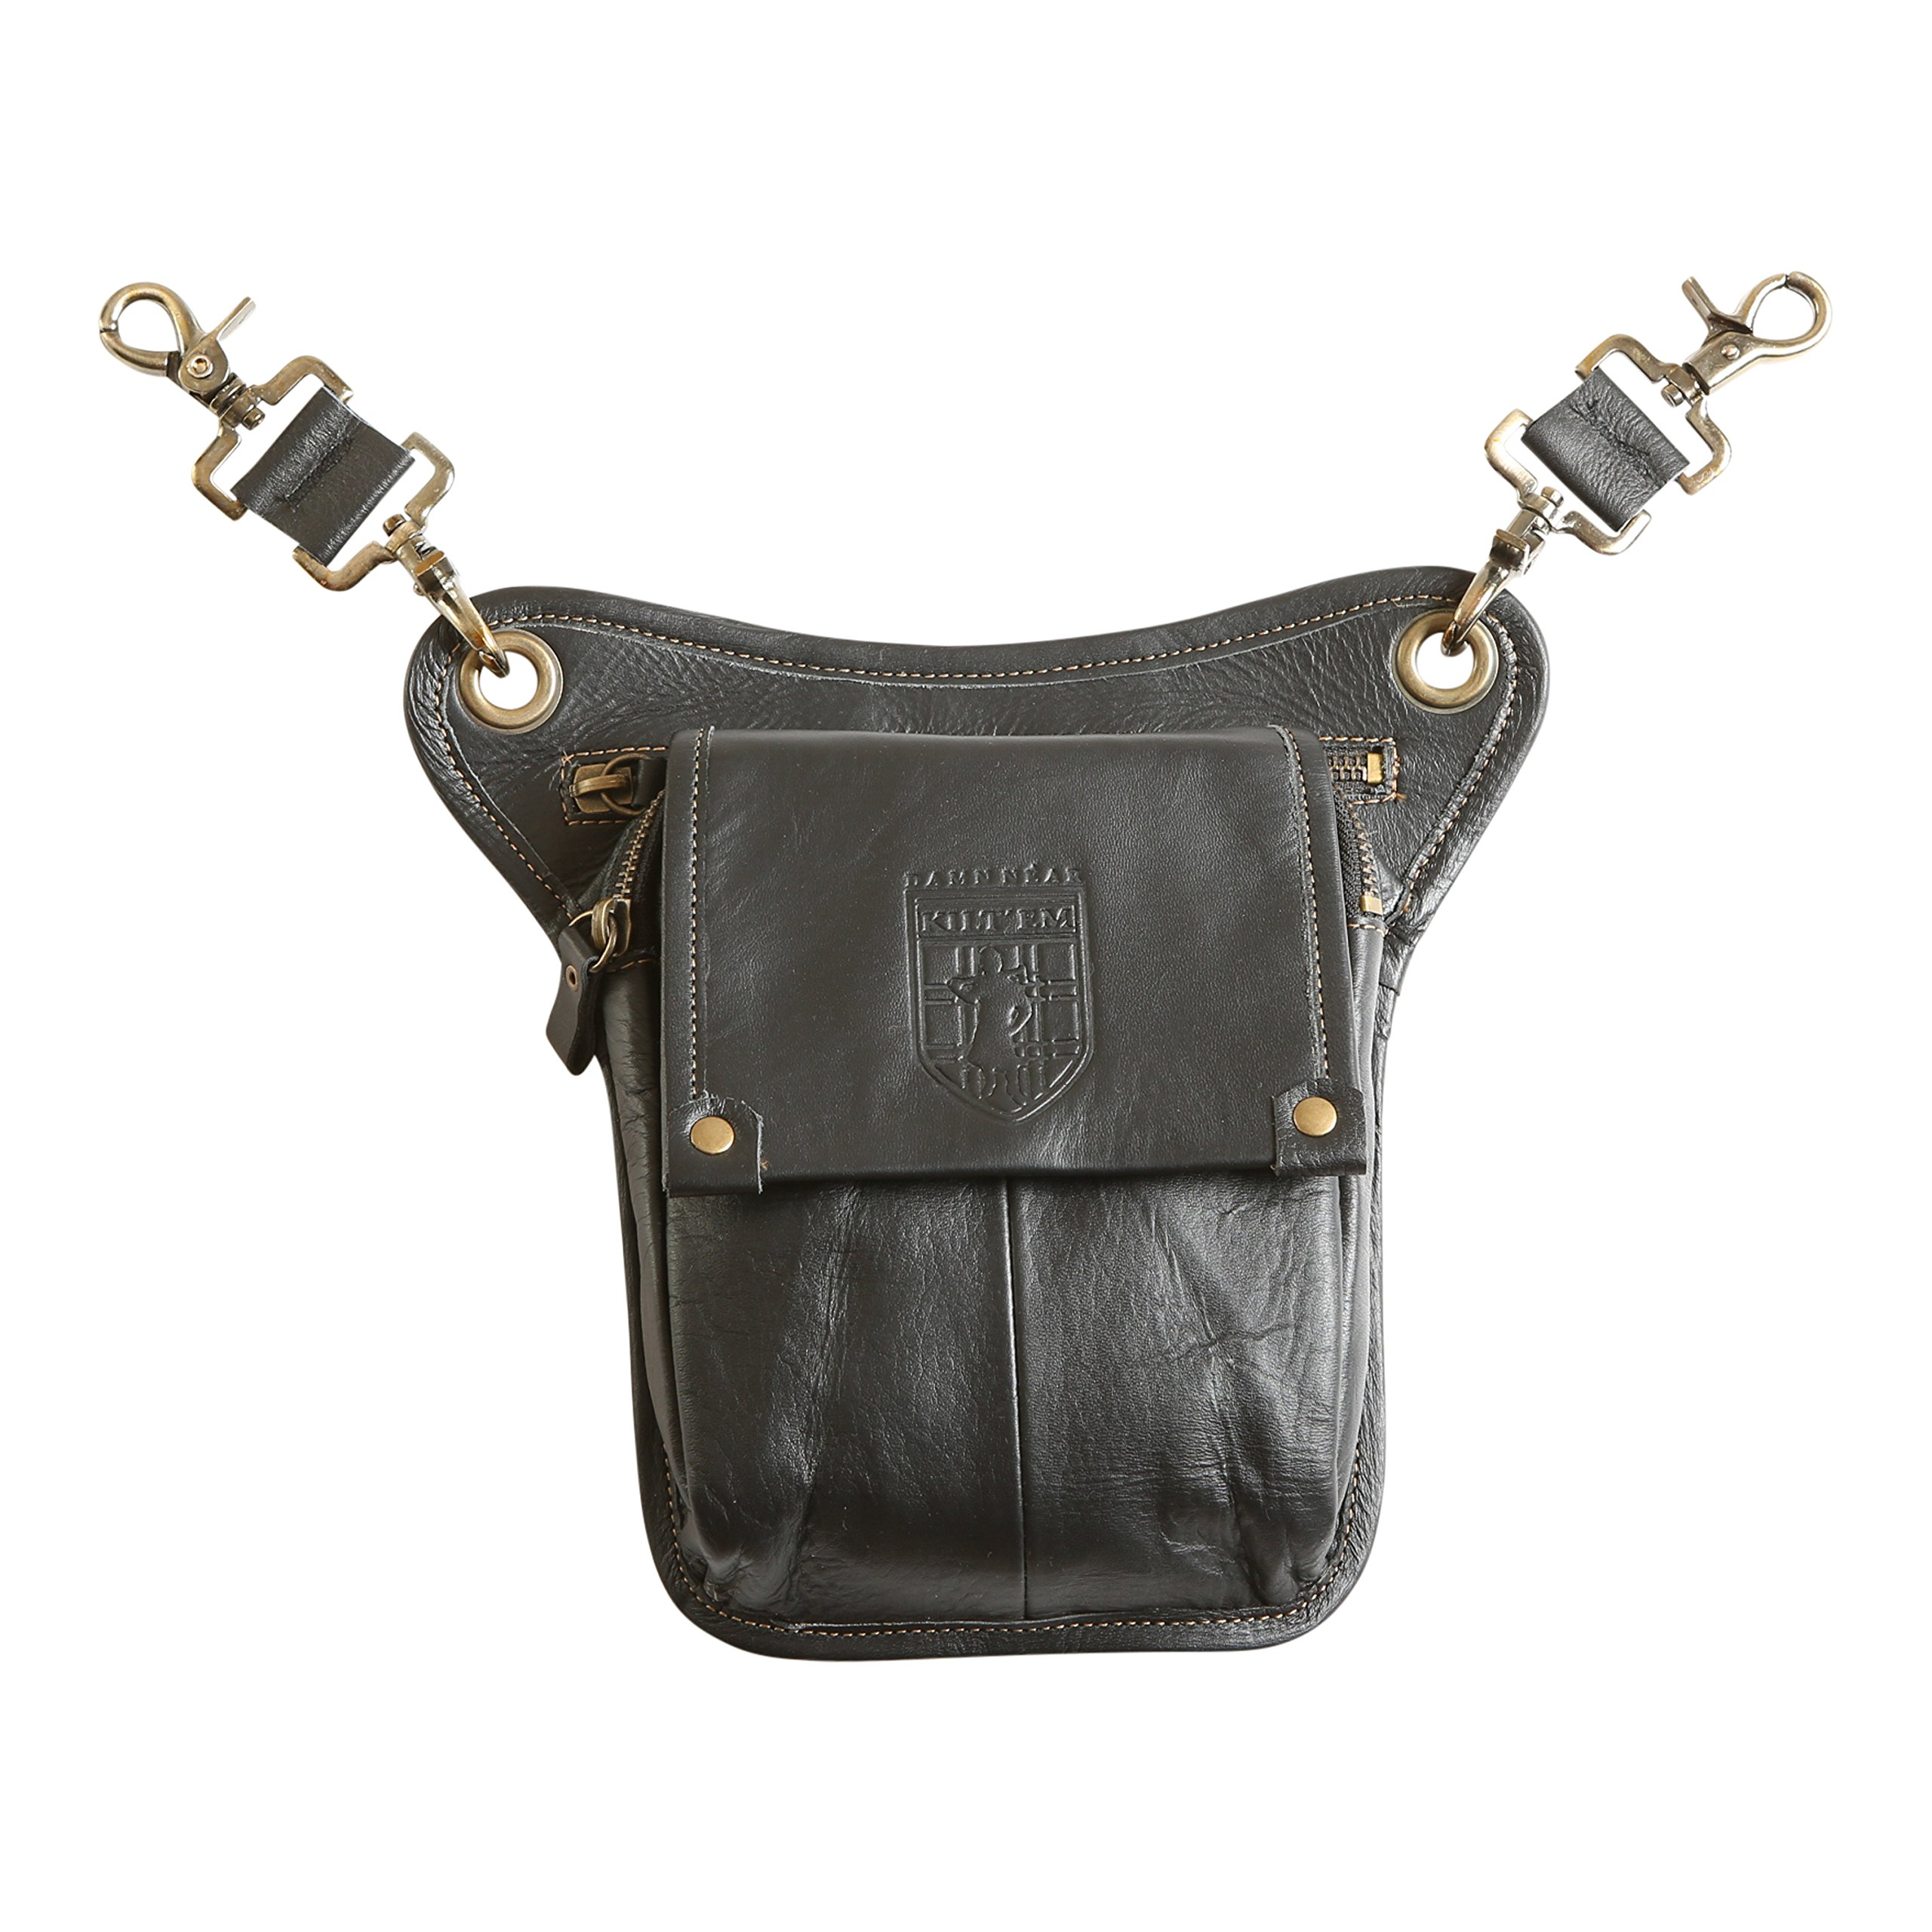 Damn Near Kilt 'Em Premium Black Leather Sporran Kilt Accessory by Damn Near Kilt 'Em